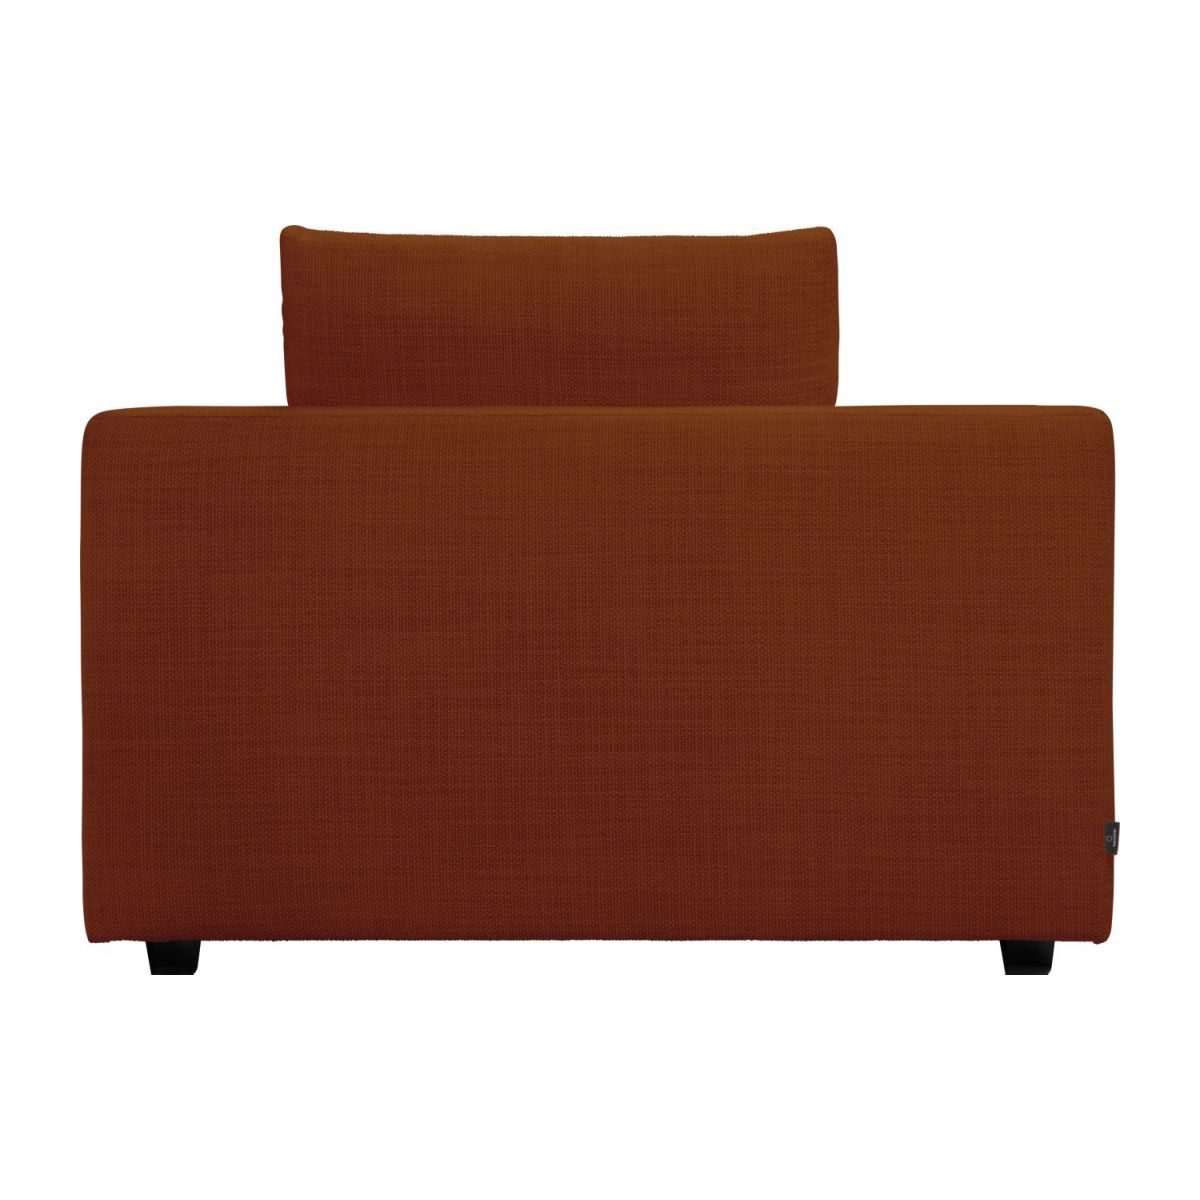 1,5 seater sofa with left armrest in Fasoli fabric, warm red rock n°4